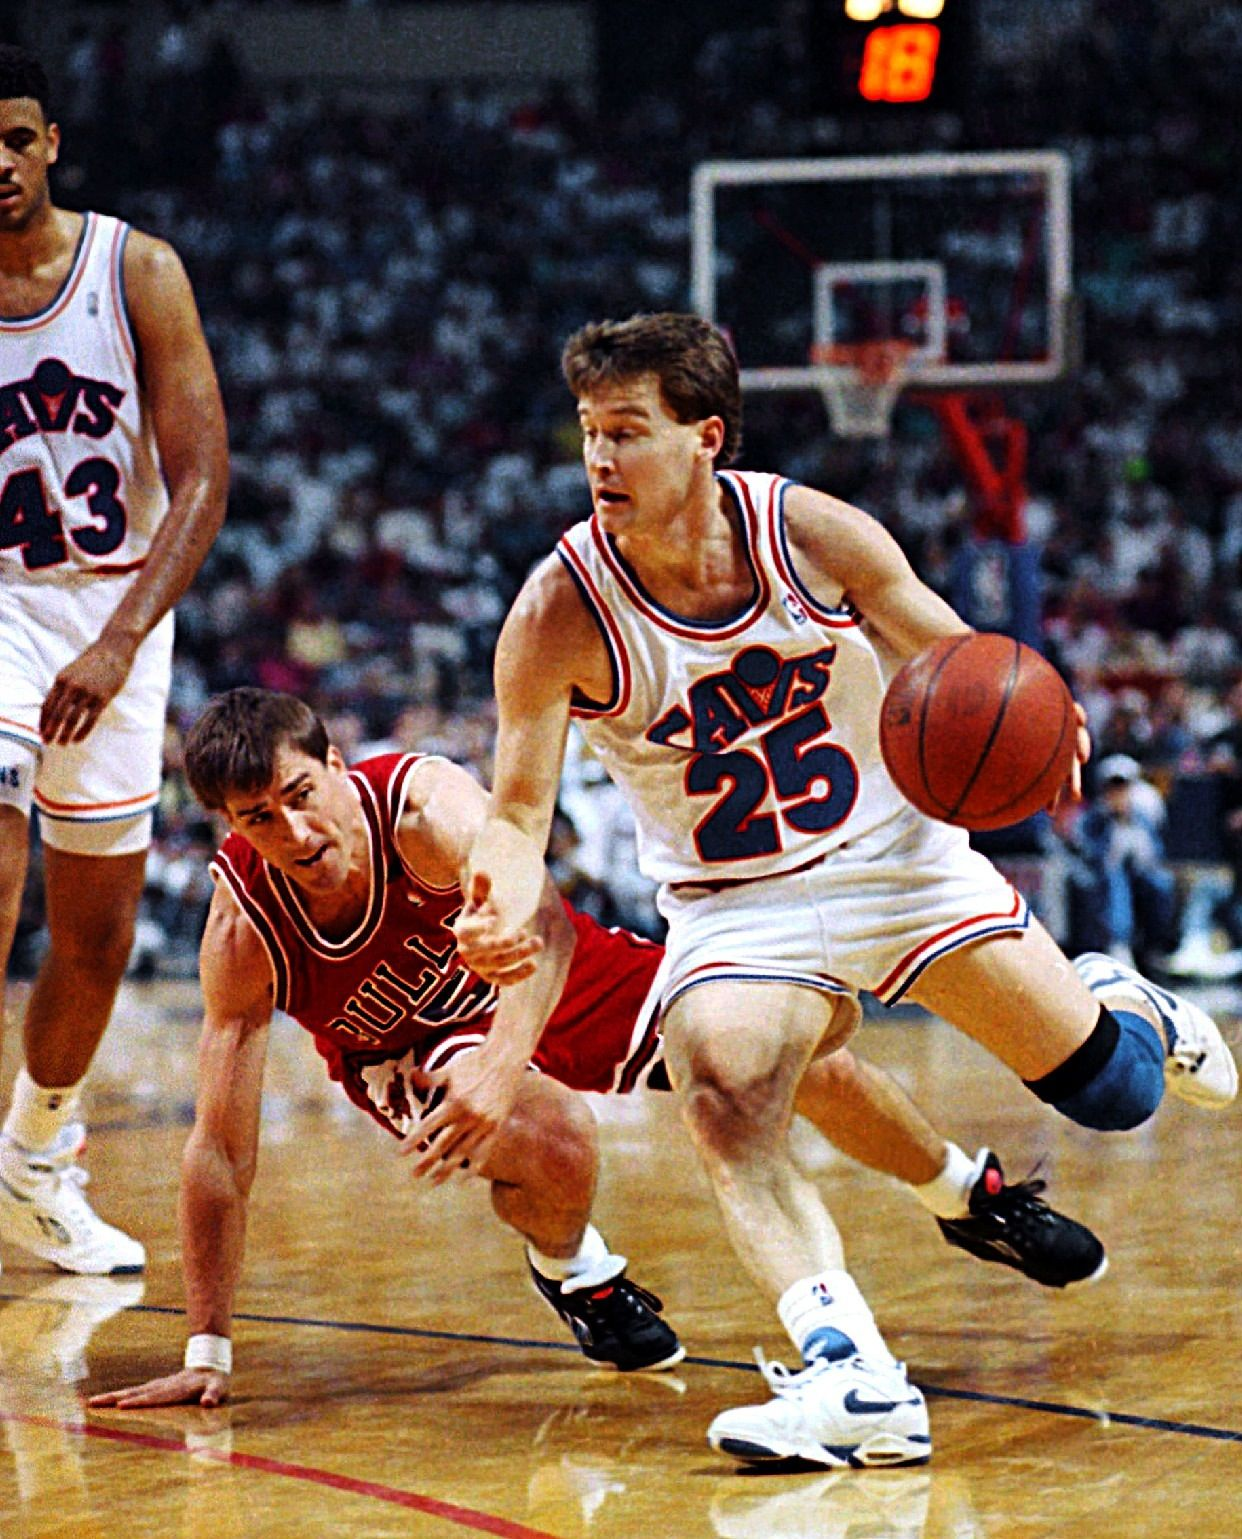 Mark Price Cleveland Cavaliers Old School Cavs I M A Forever Fan Cleveland Cavaliers Basketball American Sports Nba Legends